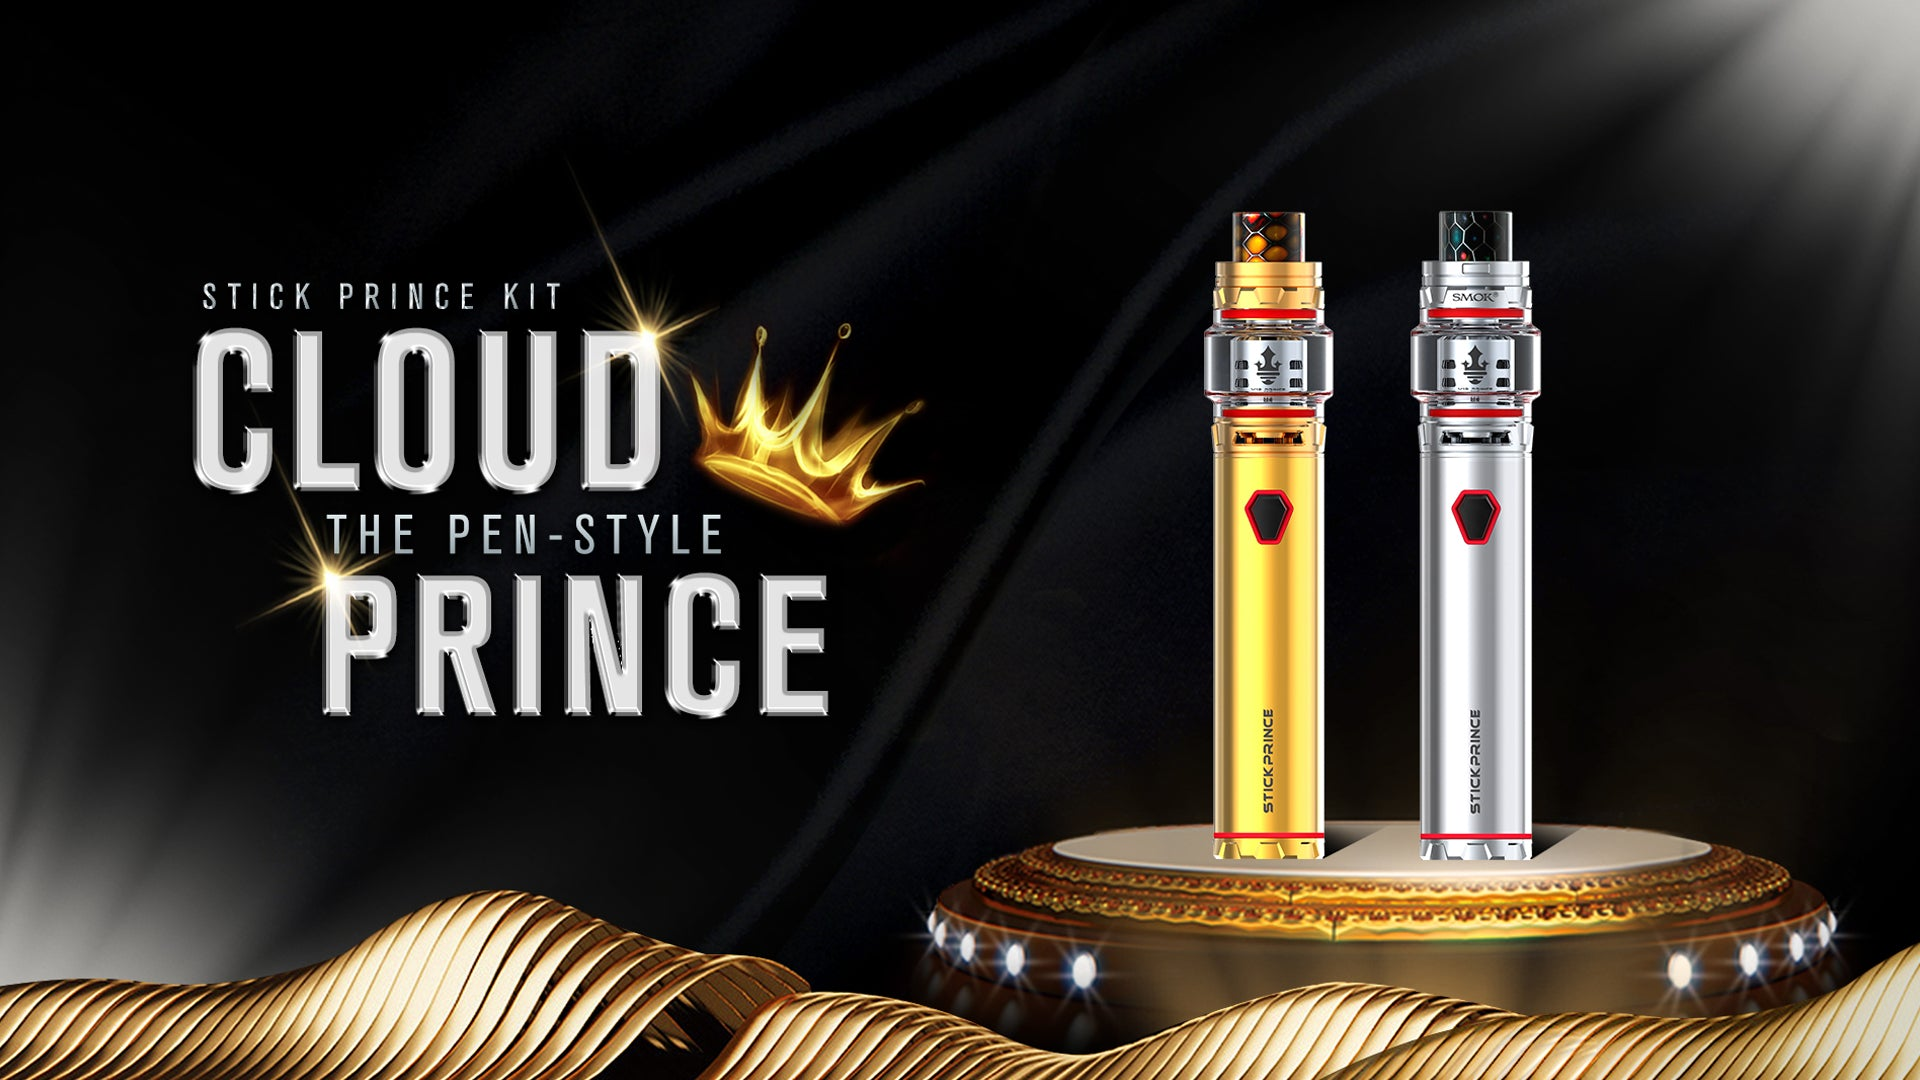 SMOK STICK PRINCE KIT 3000MAH MOD BATTERY AND TFV12 PRINCE 8ML TANK STARTER KIT